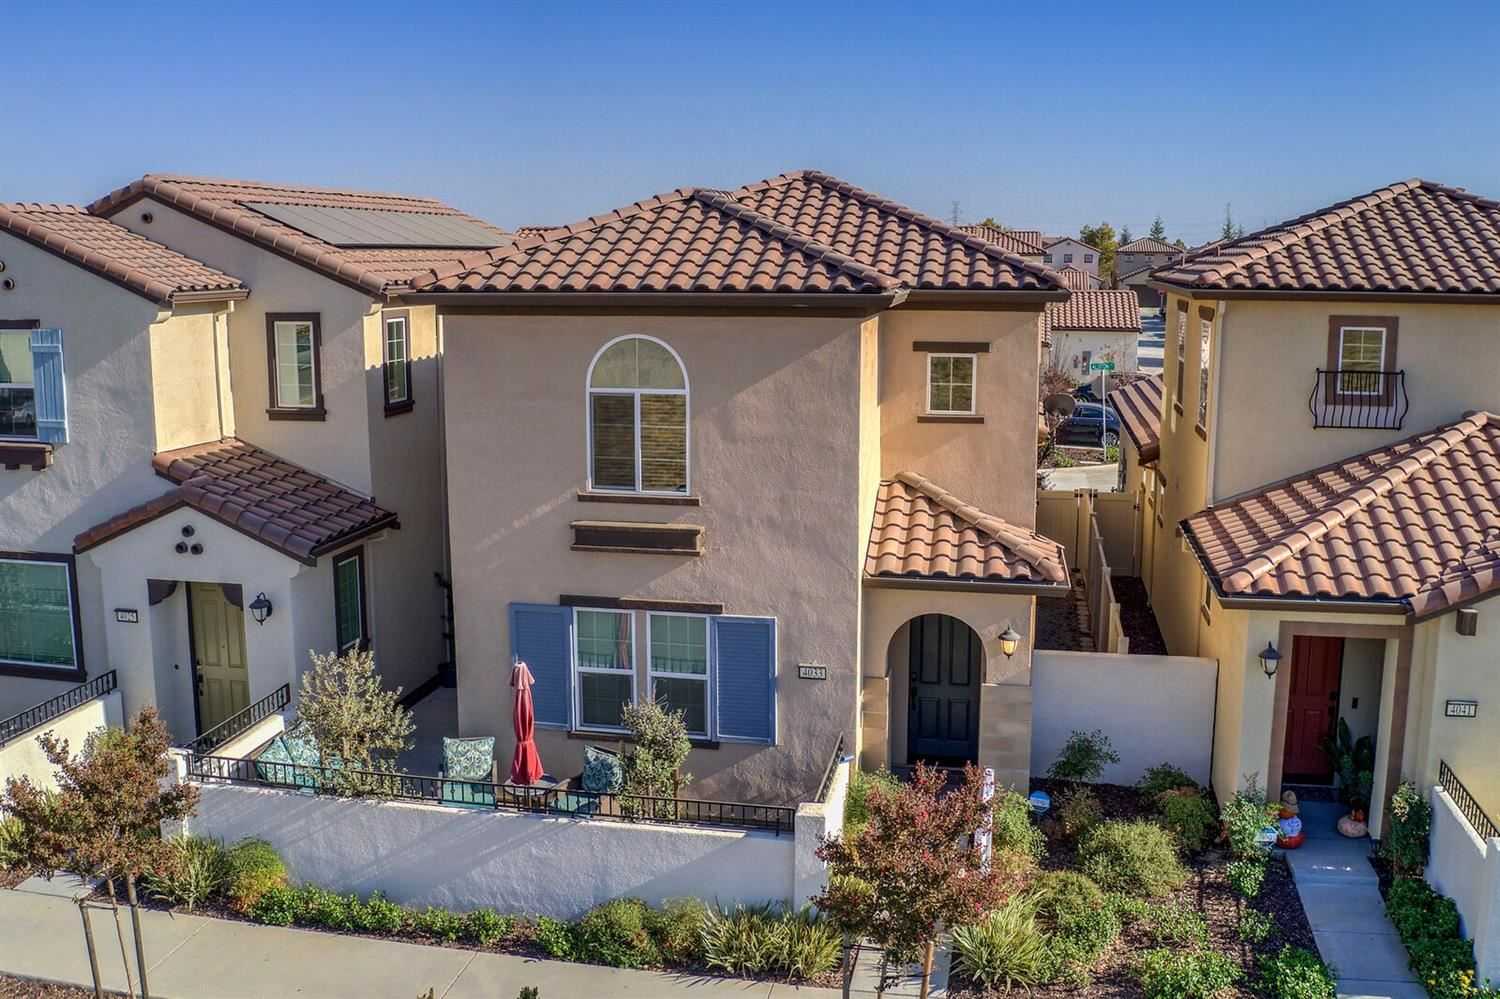 Photo of 4033 Gunnar Drive, Roseville, CA 95747 (MLS # 20063980)